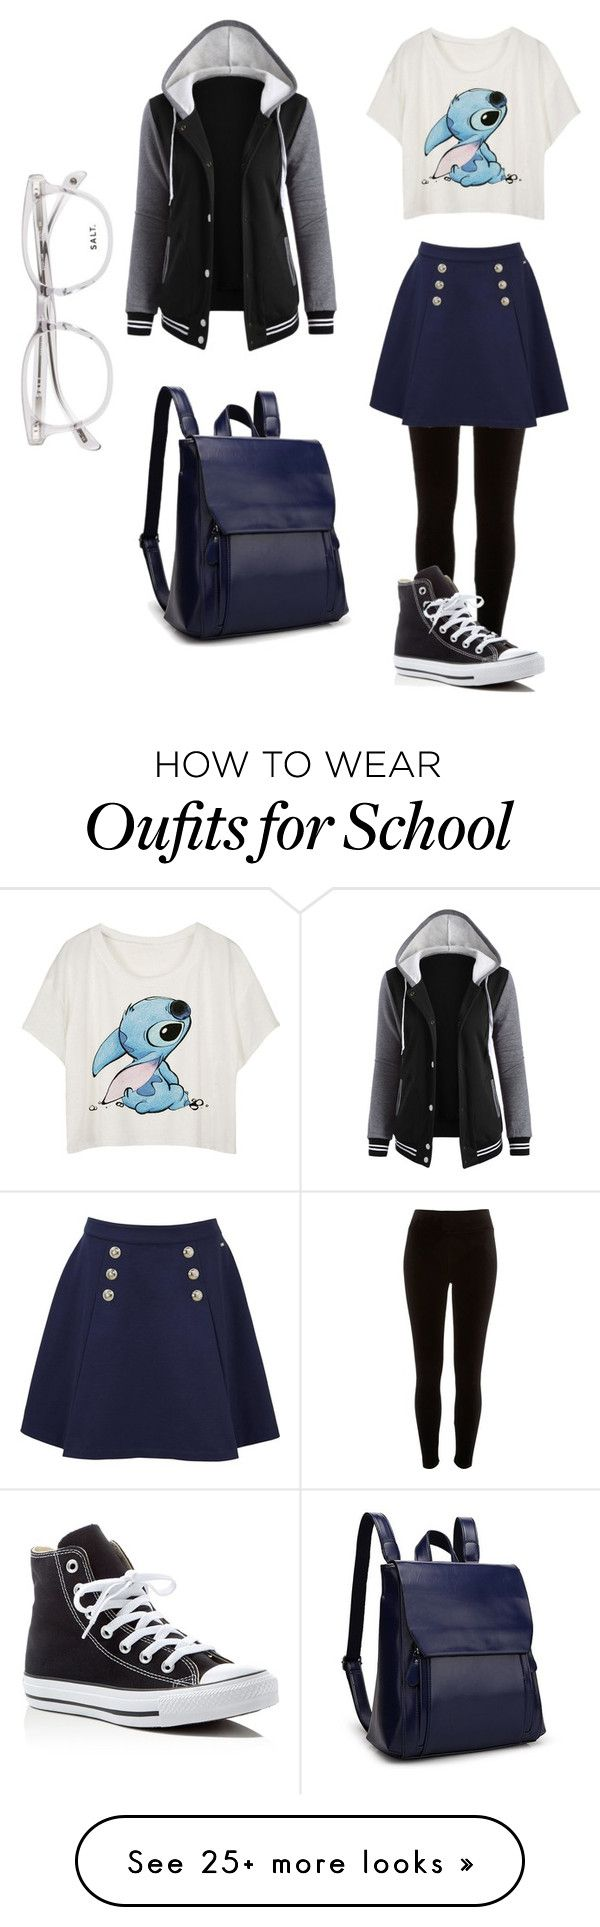 """Untitled #161"" by maya-03-b on Polyvore featuring River Island, Tommy Hilfiger and Converse"